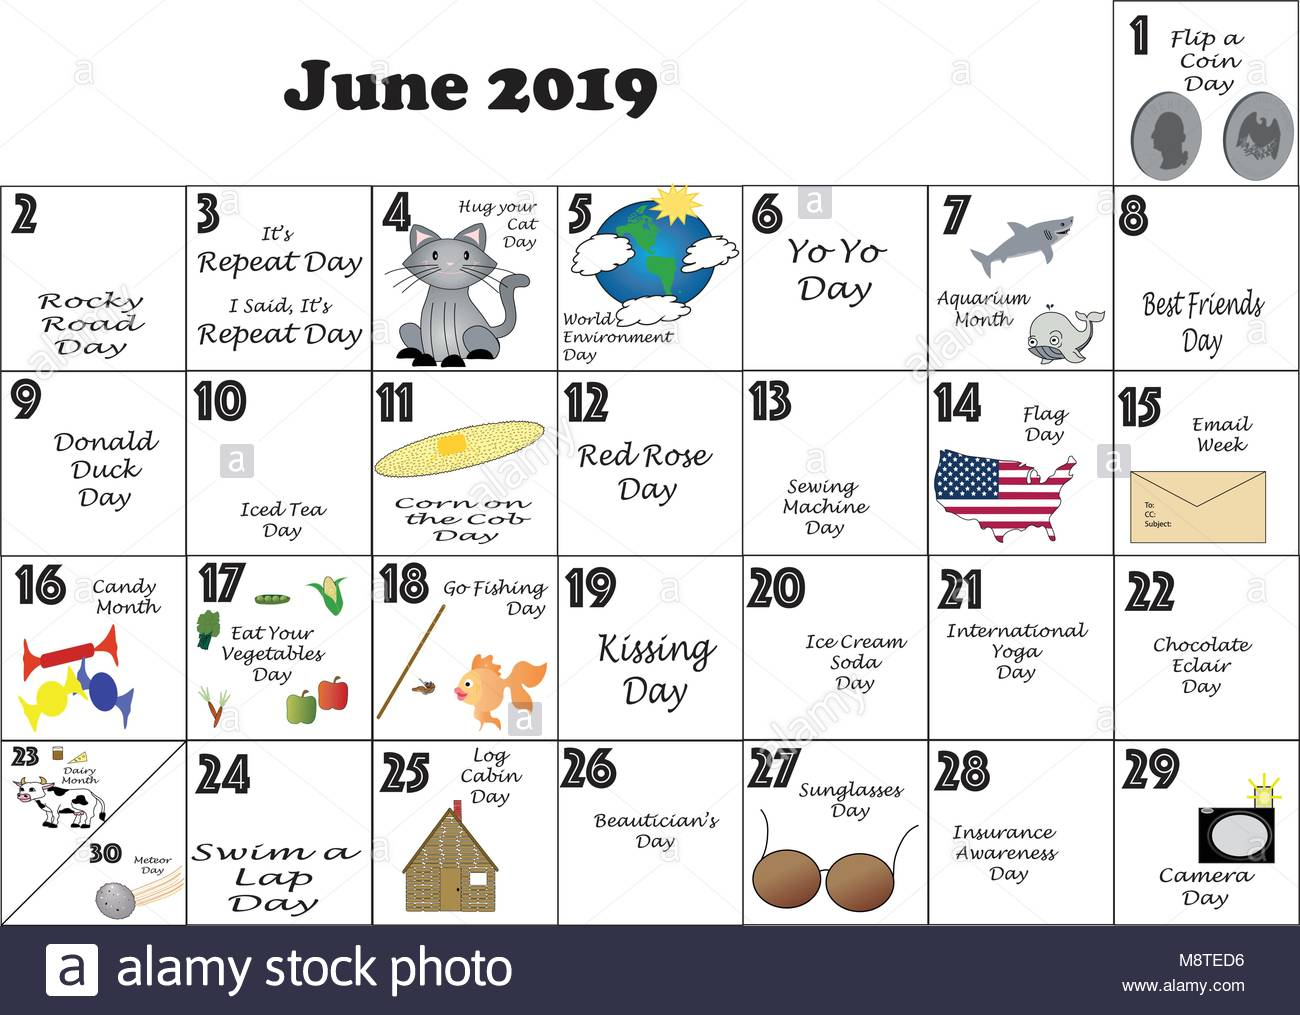 Calendar Celebrations 2019 June 2019 monthly calendar illustrated and annotated with daily